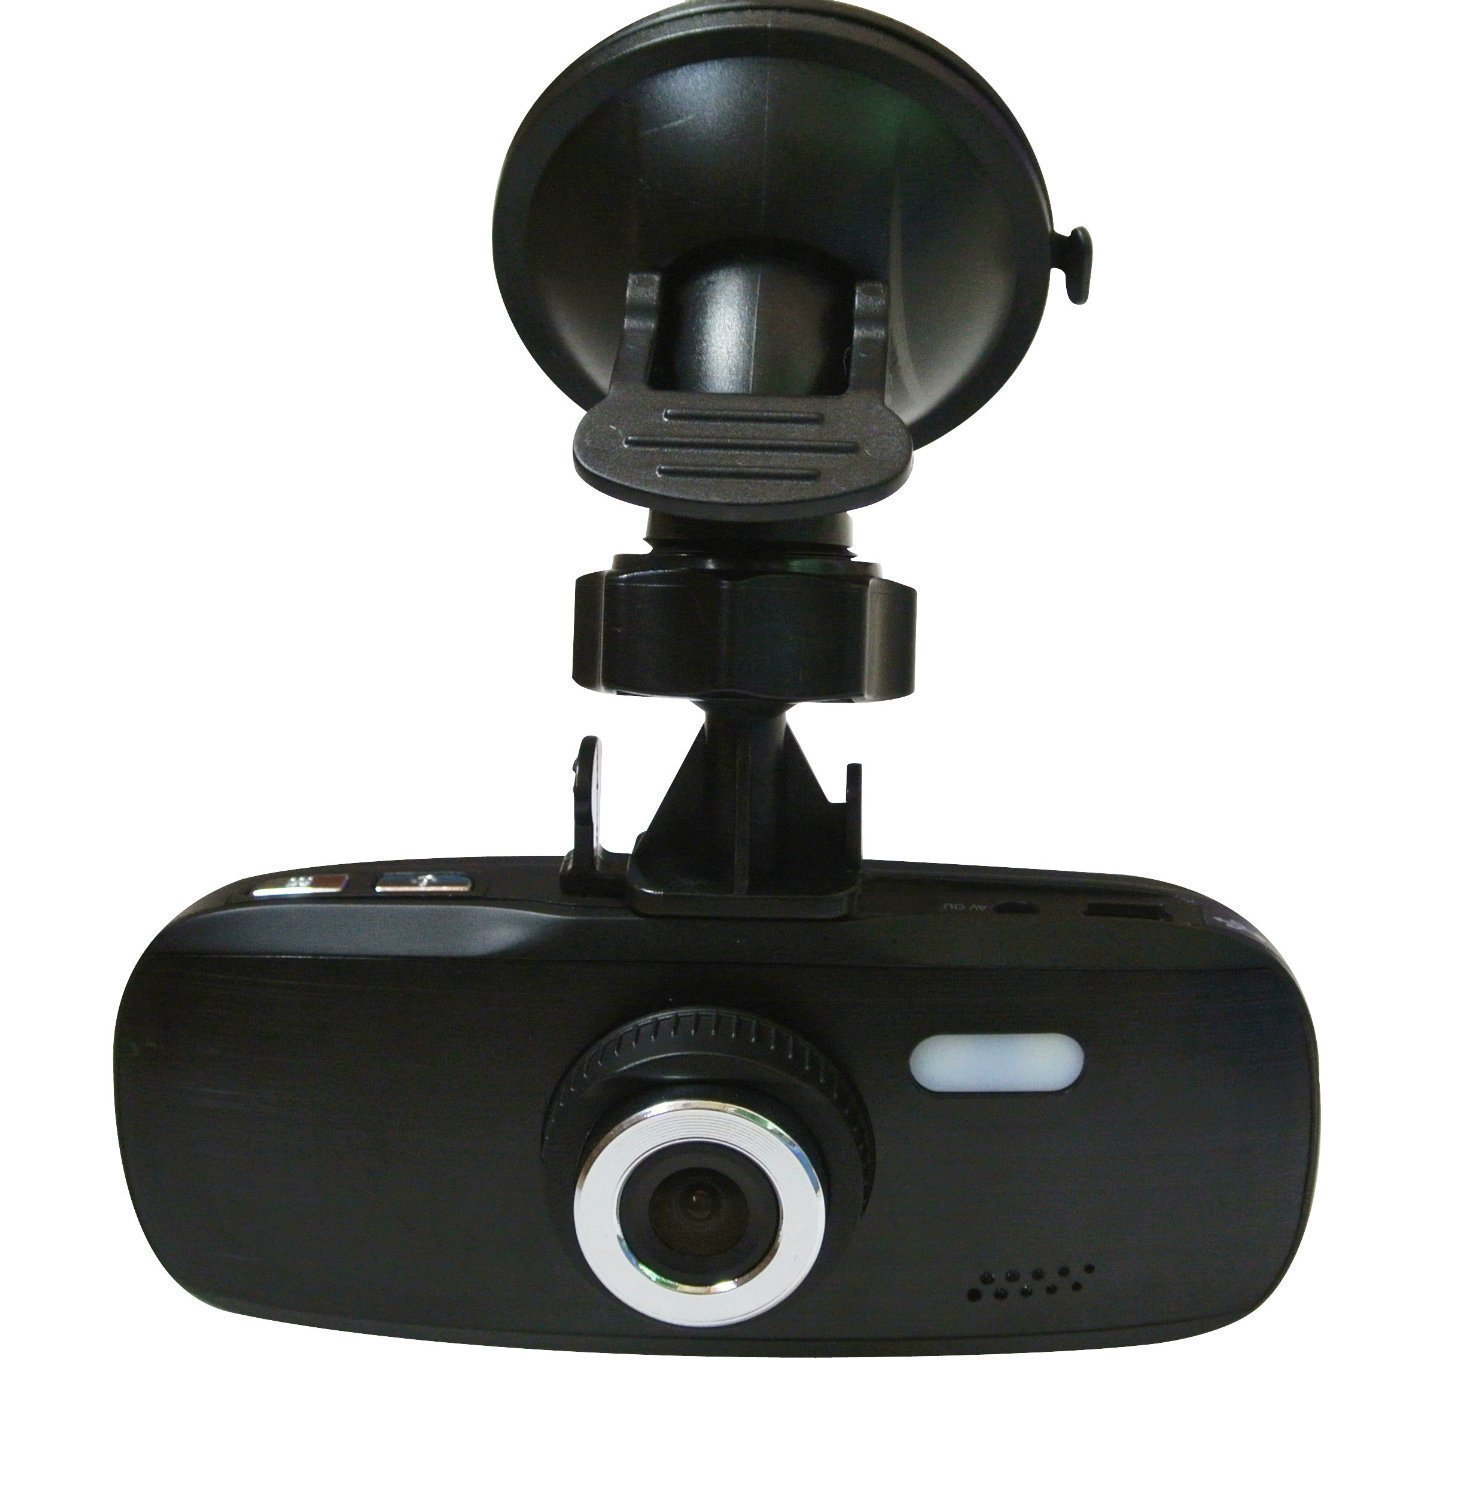 Geepro Vehicle Security Cameras